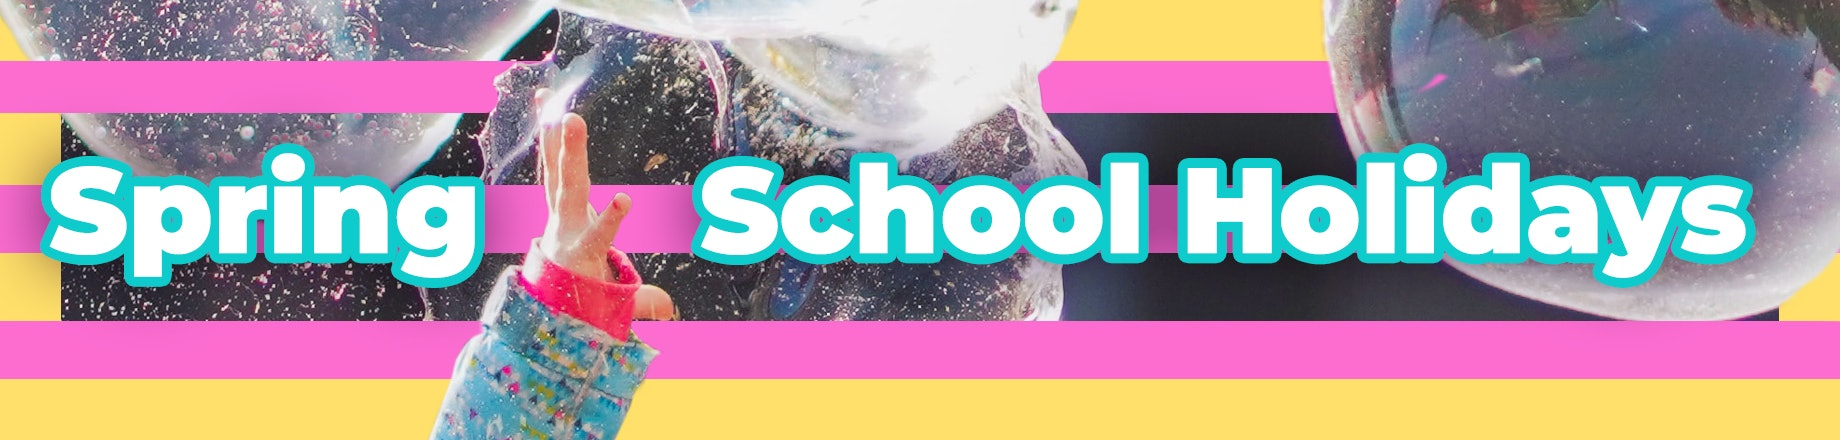 Spring School Holiday Events